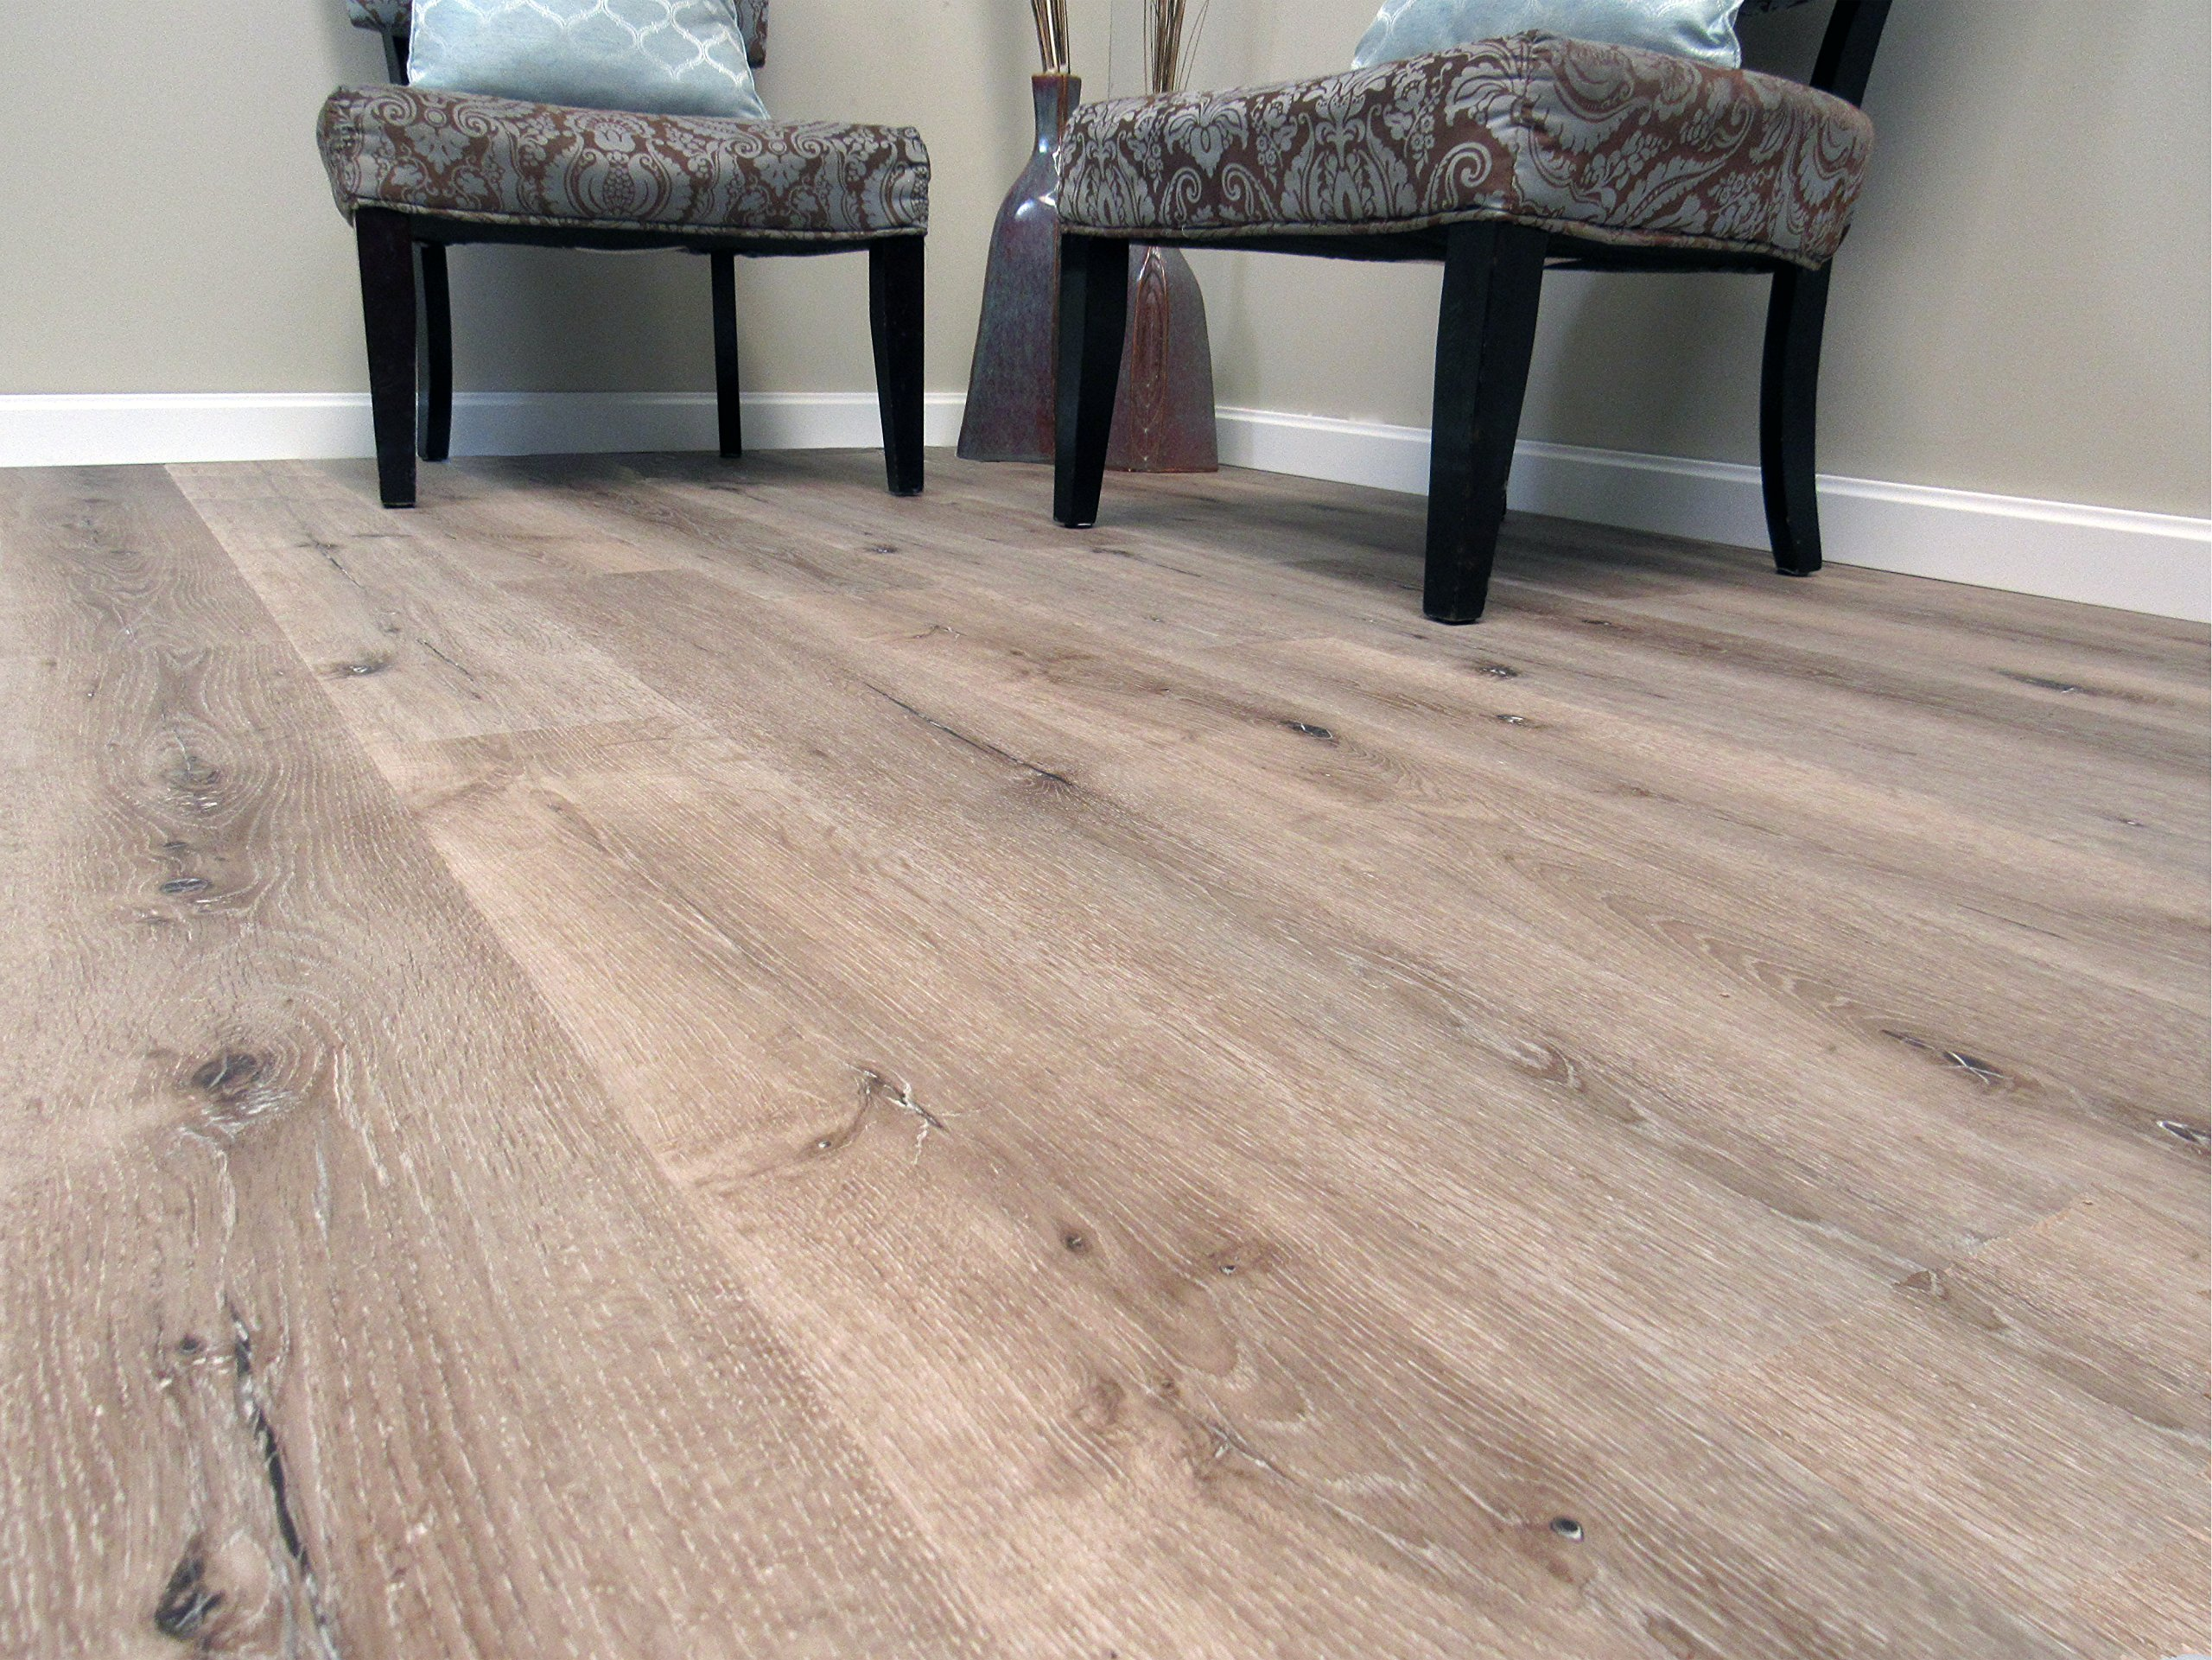 DriCore Waterproof WPC Engineered Flooring 47.64 in x 6.85 in x 6.6mm (40.79 Square Feet, Arctic Oak) by DriCore (Image #2)